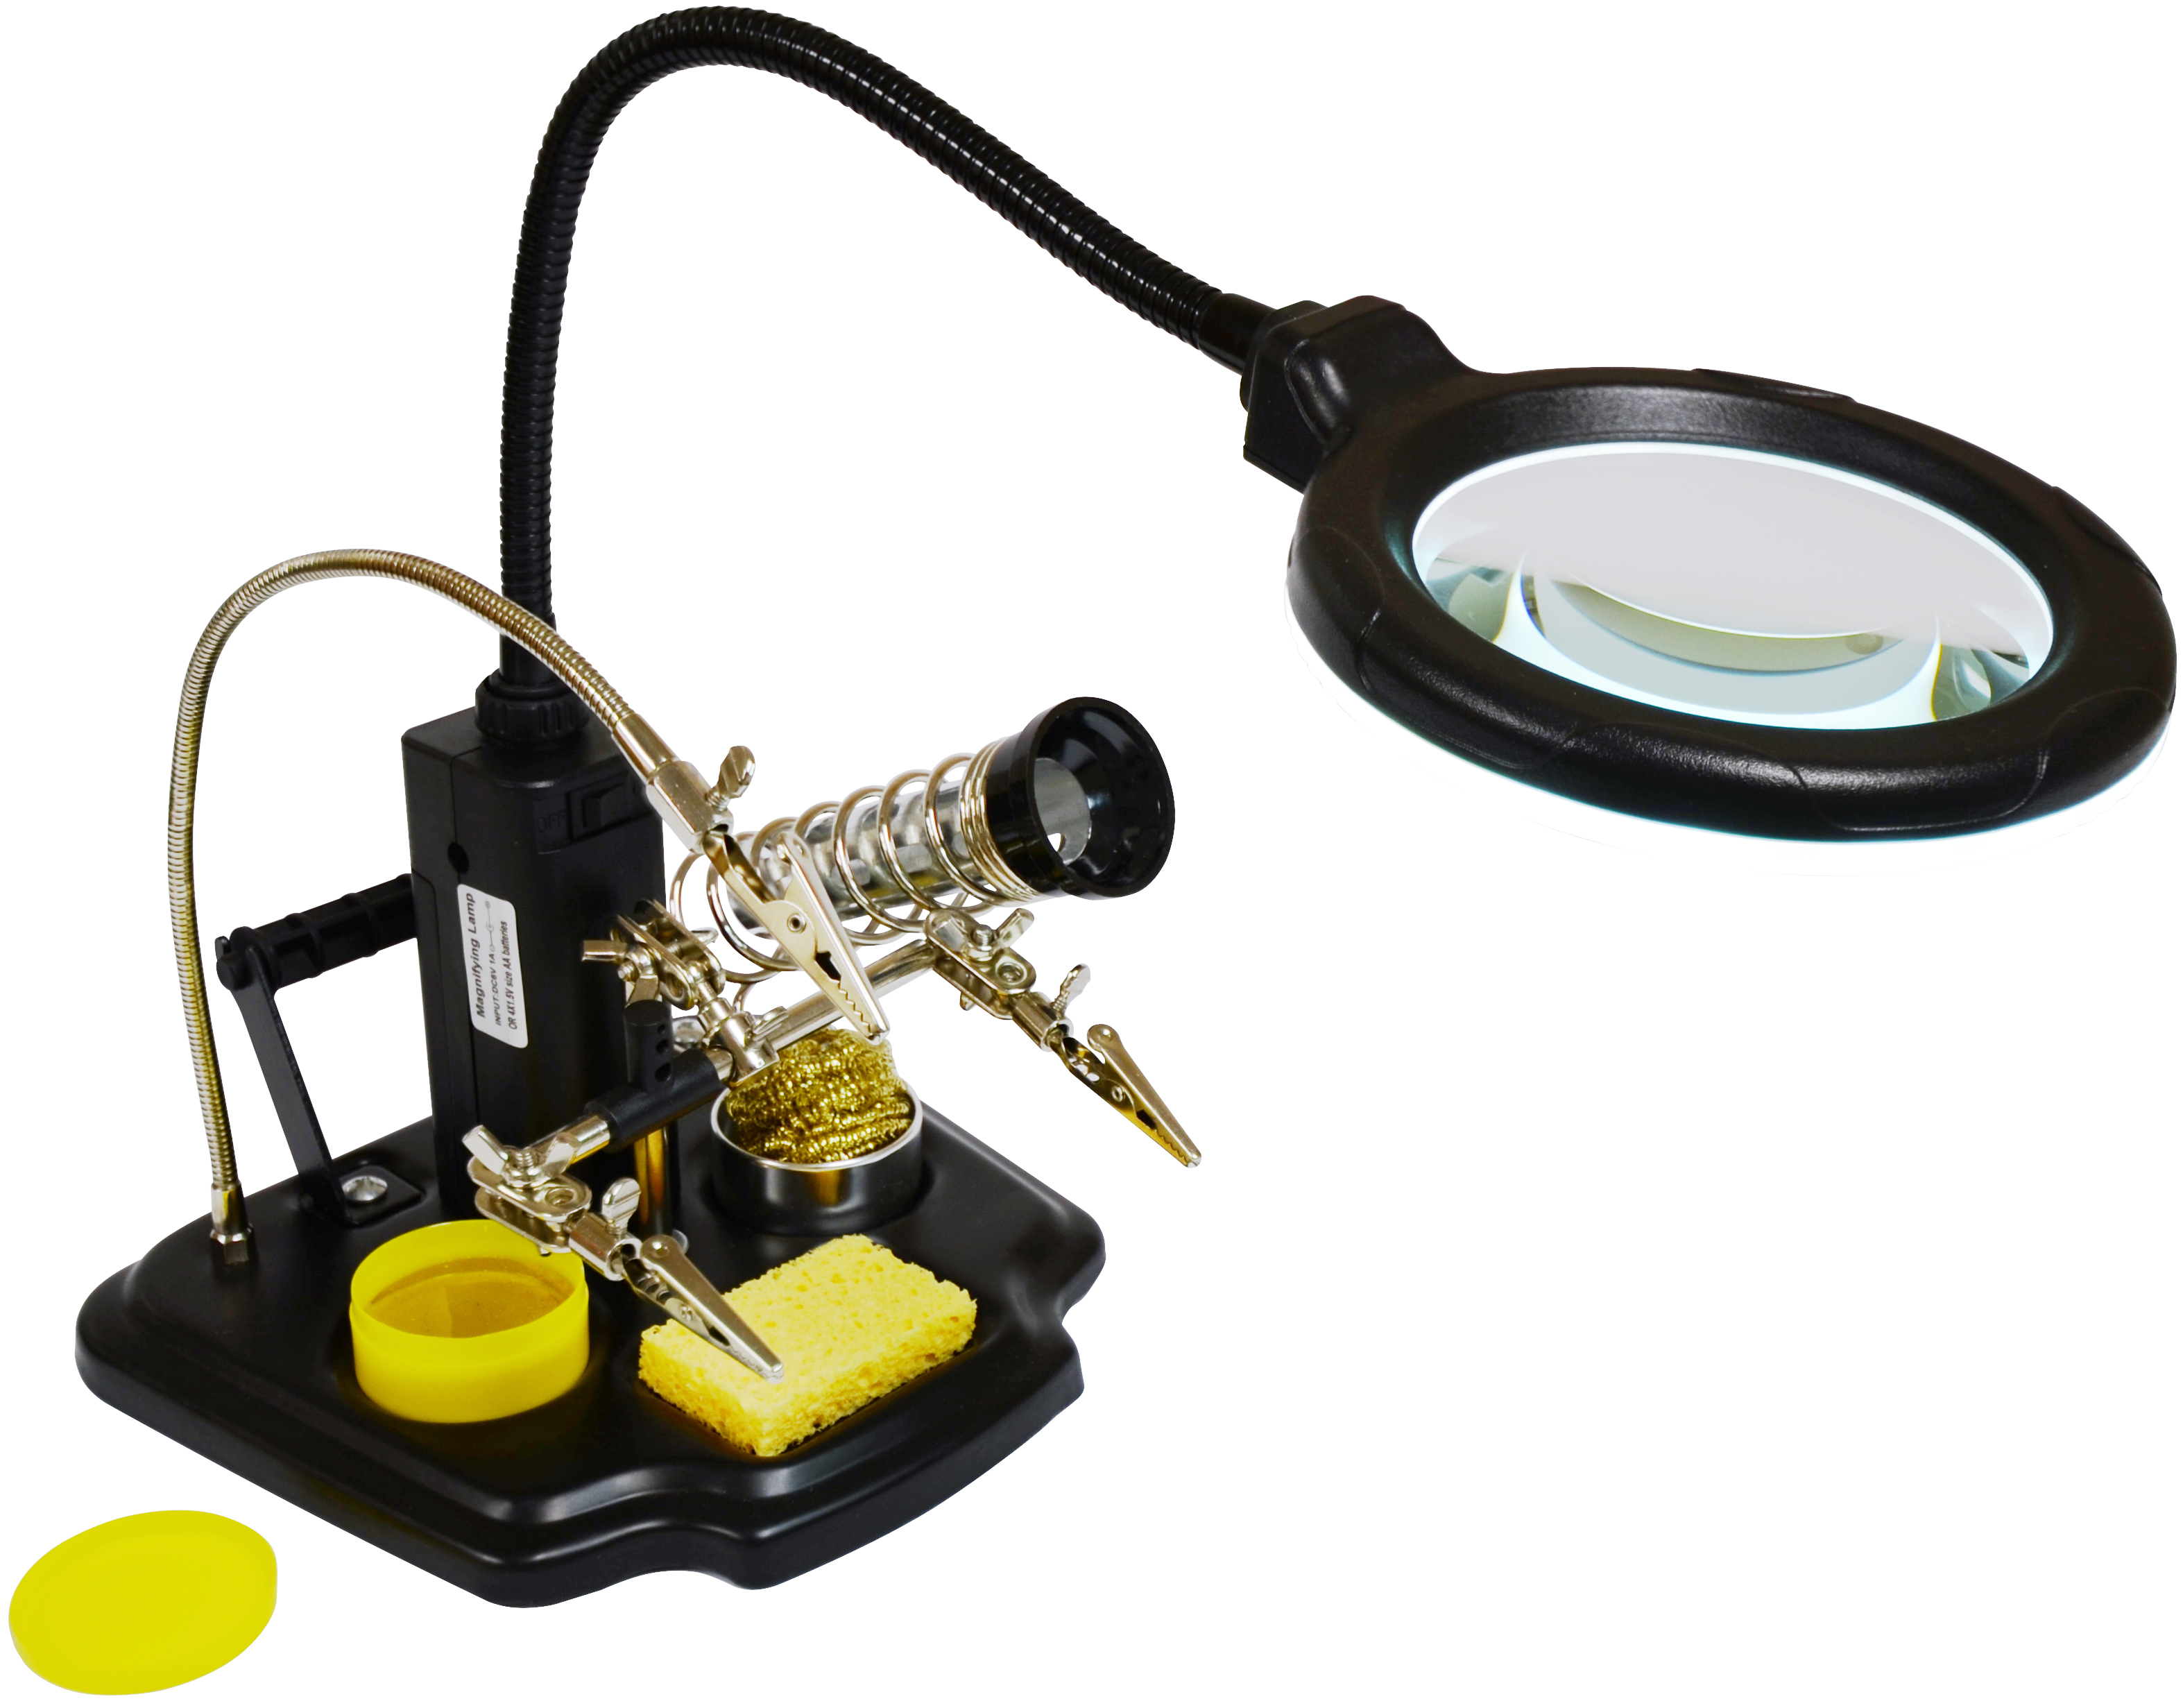 lighting by lamp magnifier lens top adapter newhouse ul magnifying table diopter product led